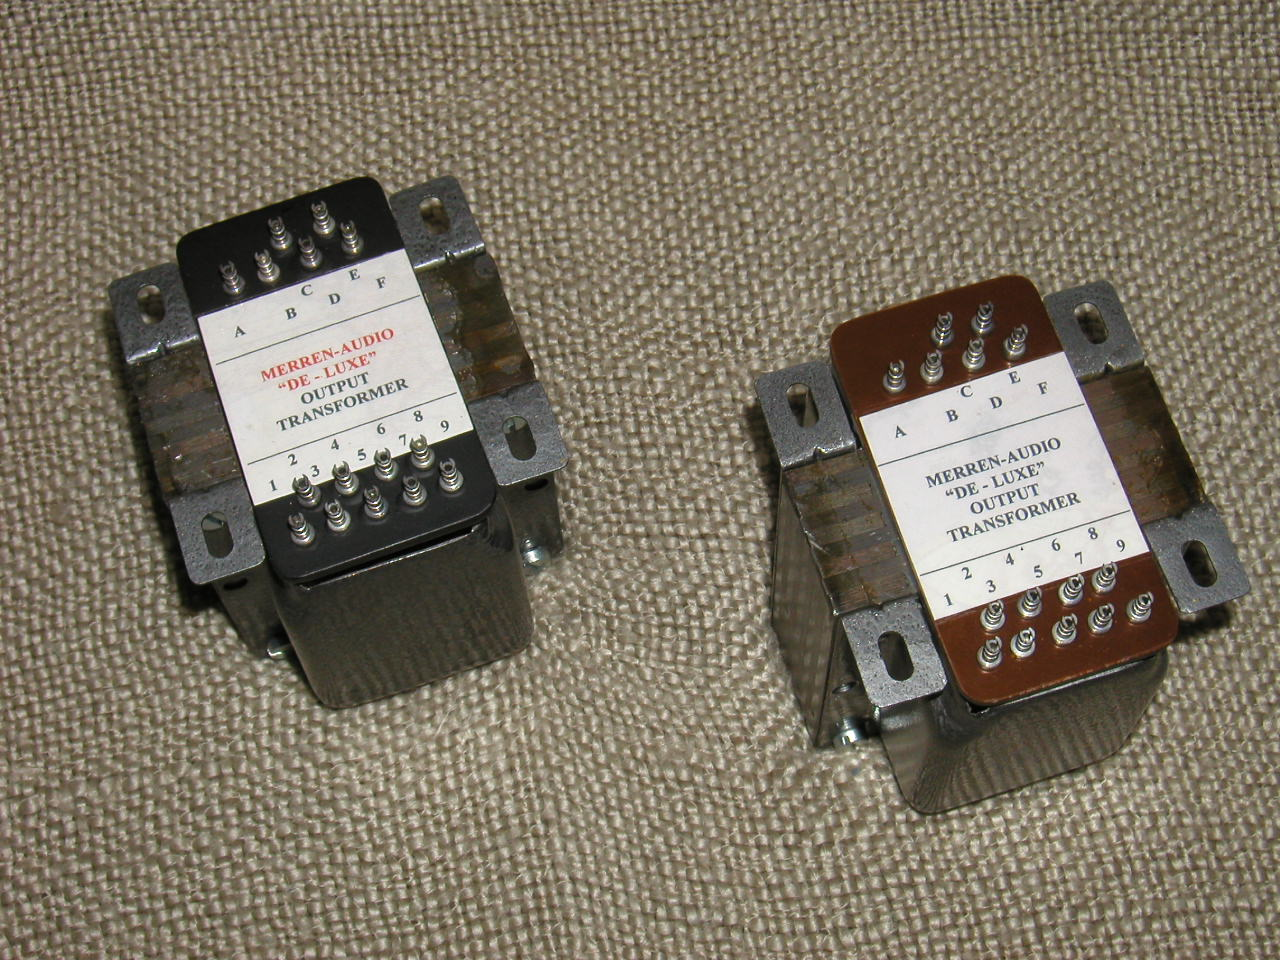 merren audio marshall transformers bottom view jtm 45 rs style output transformers